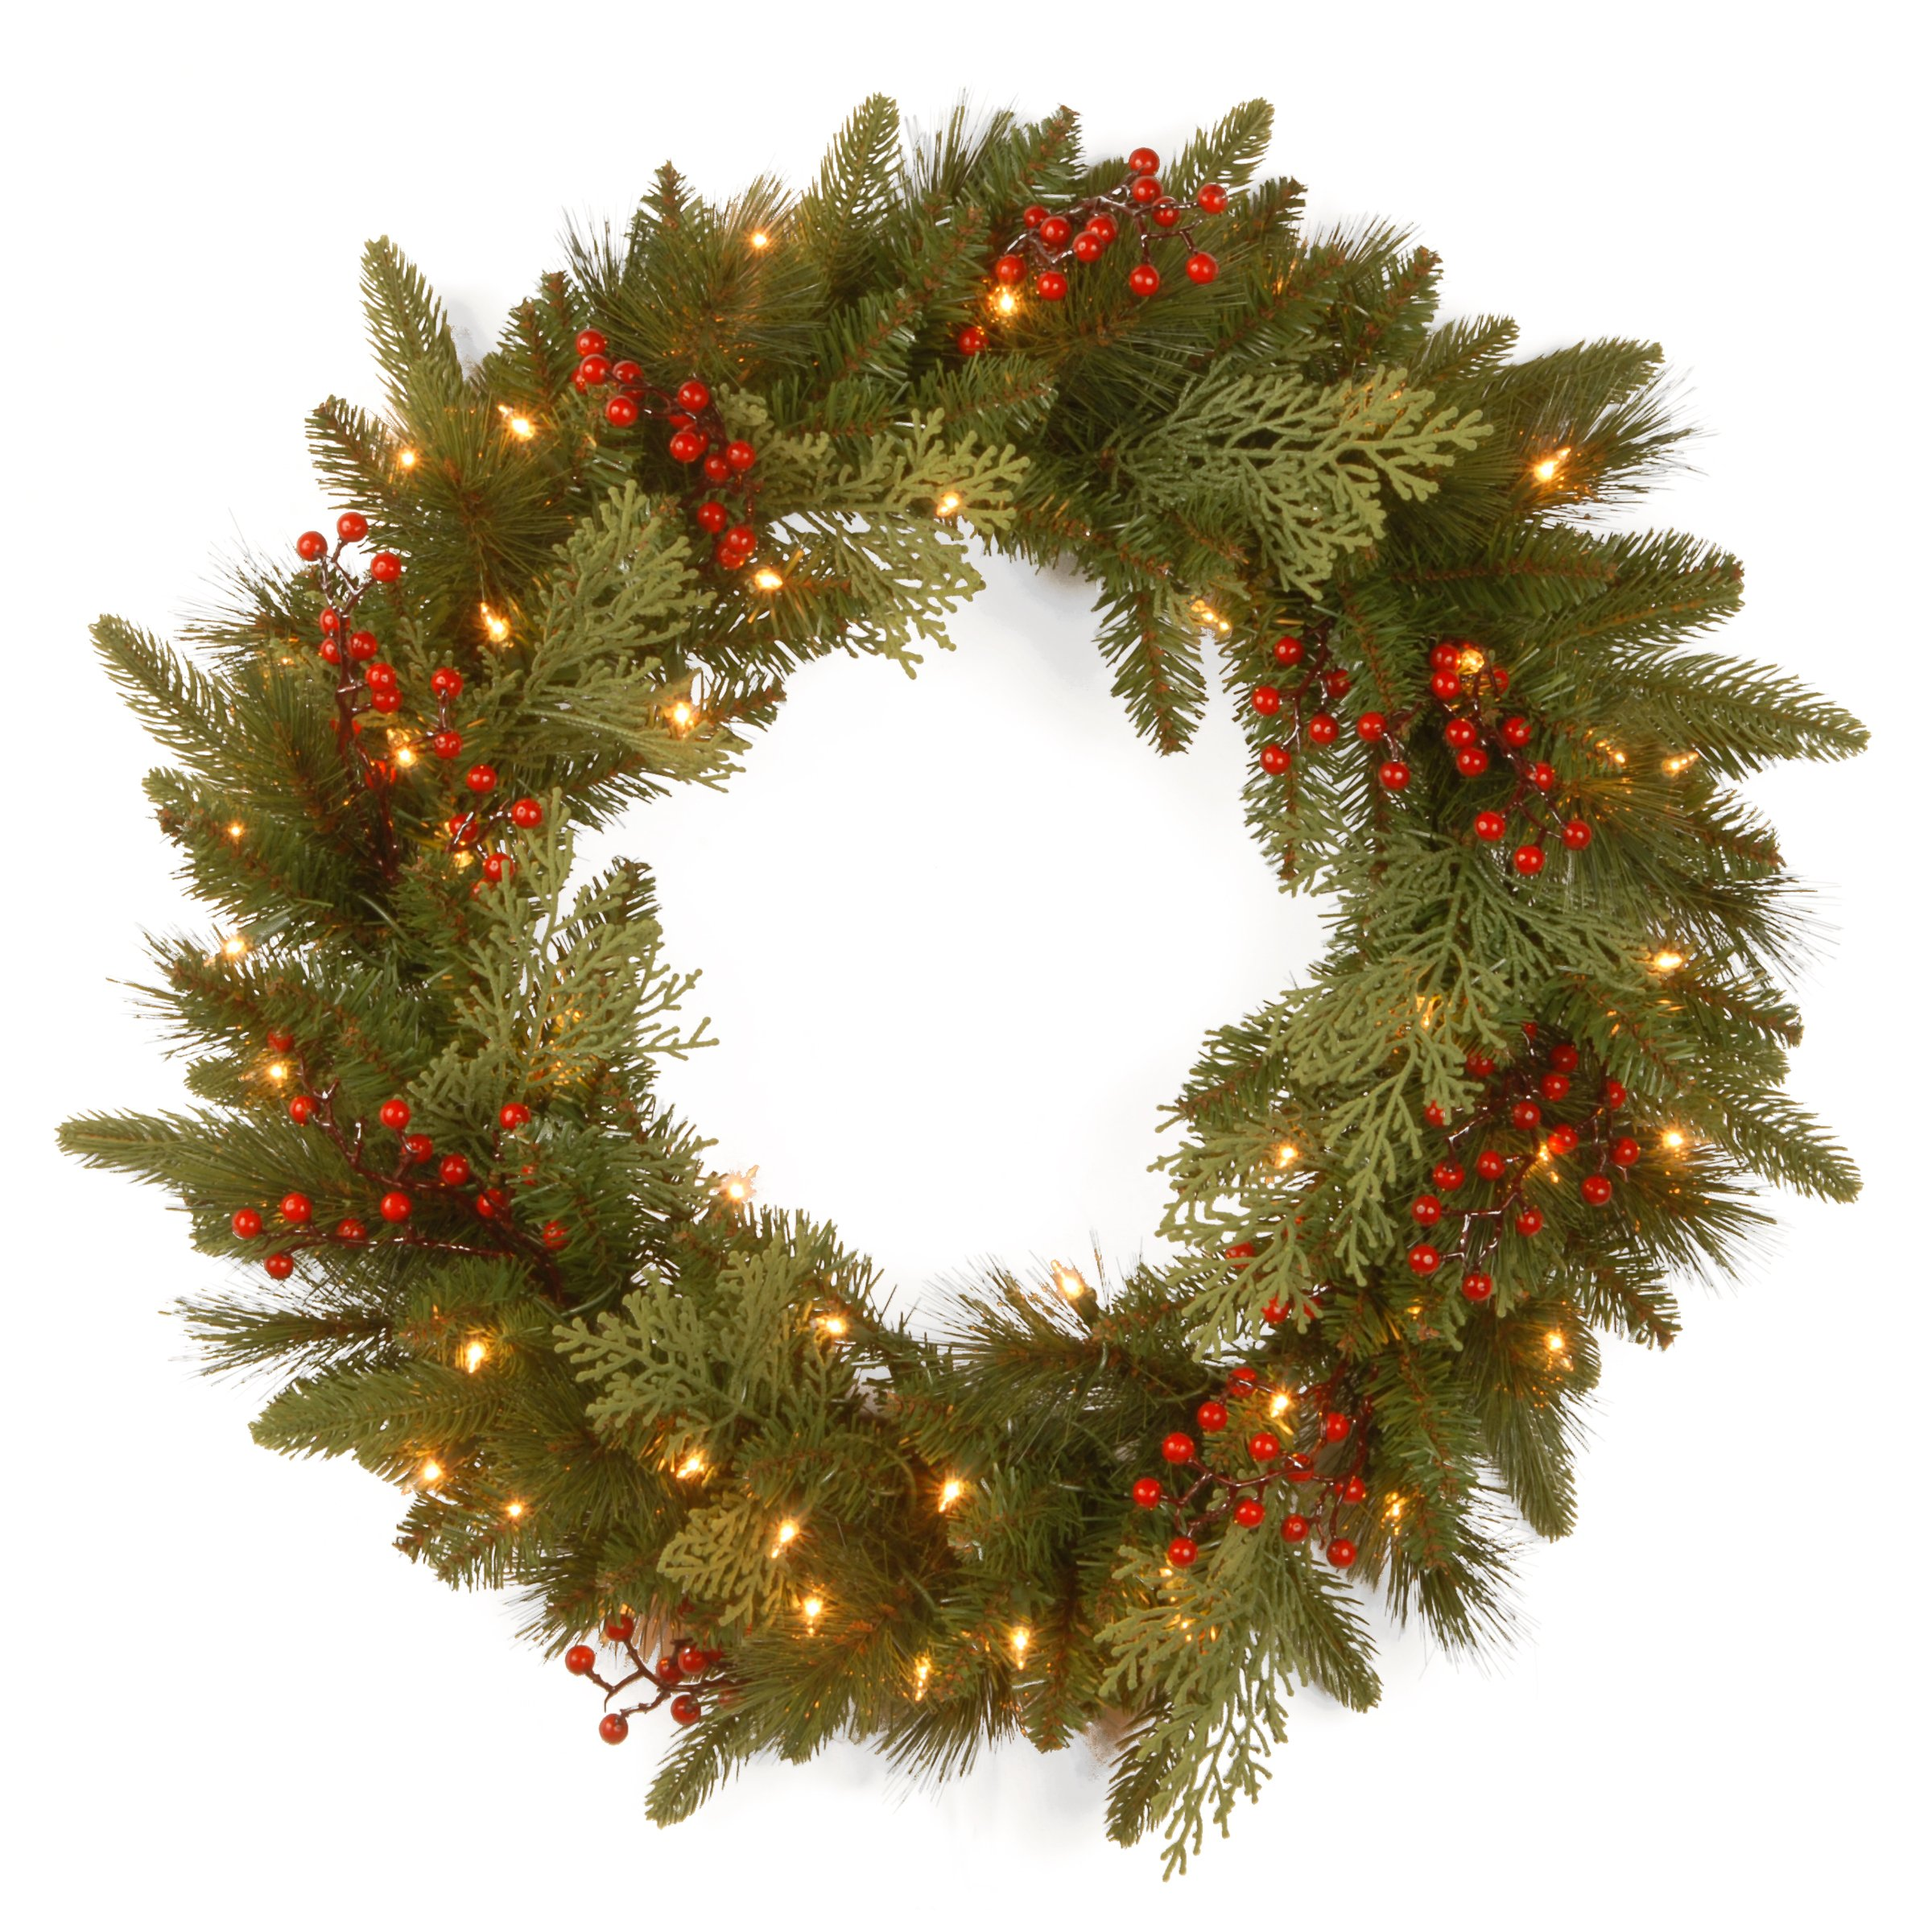 National Tree 24 Inch Feel Real  Classical Collection Wreath with 8 Red Berries, 8 Cedar Leaves and 50 Battery Operated Warm White LED Lights with Timer (PECC3-300-24WB1)